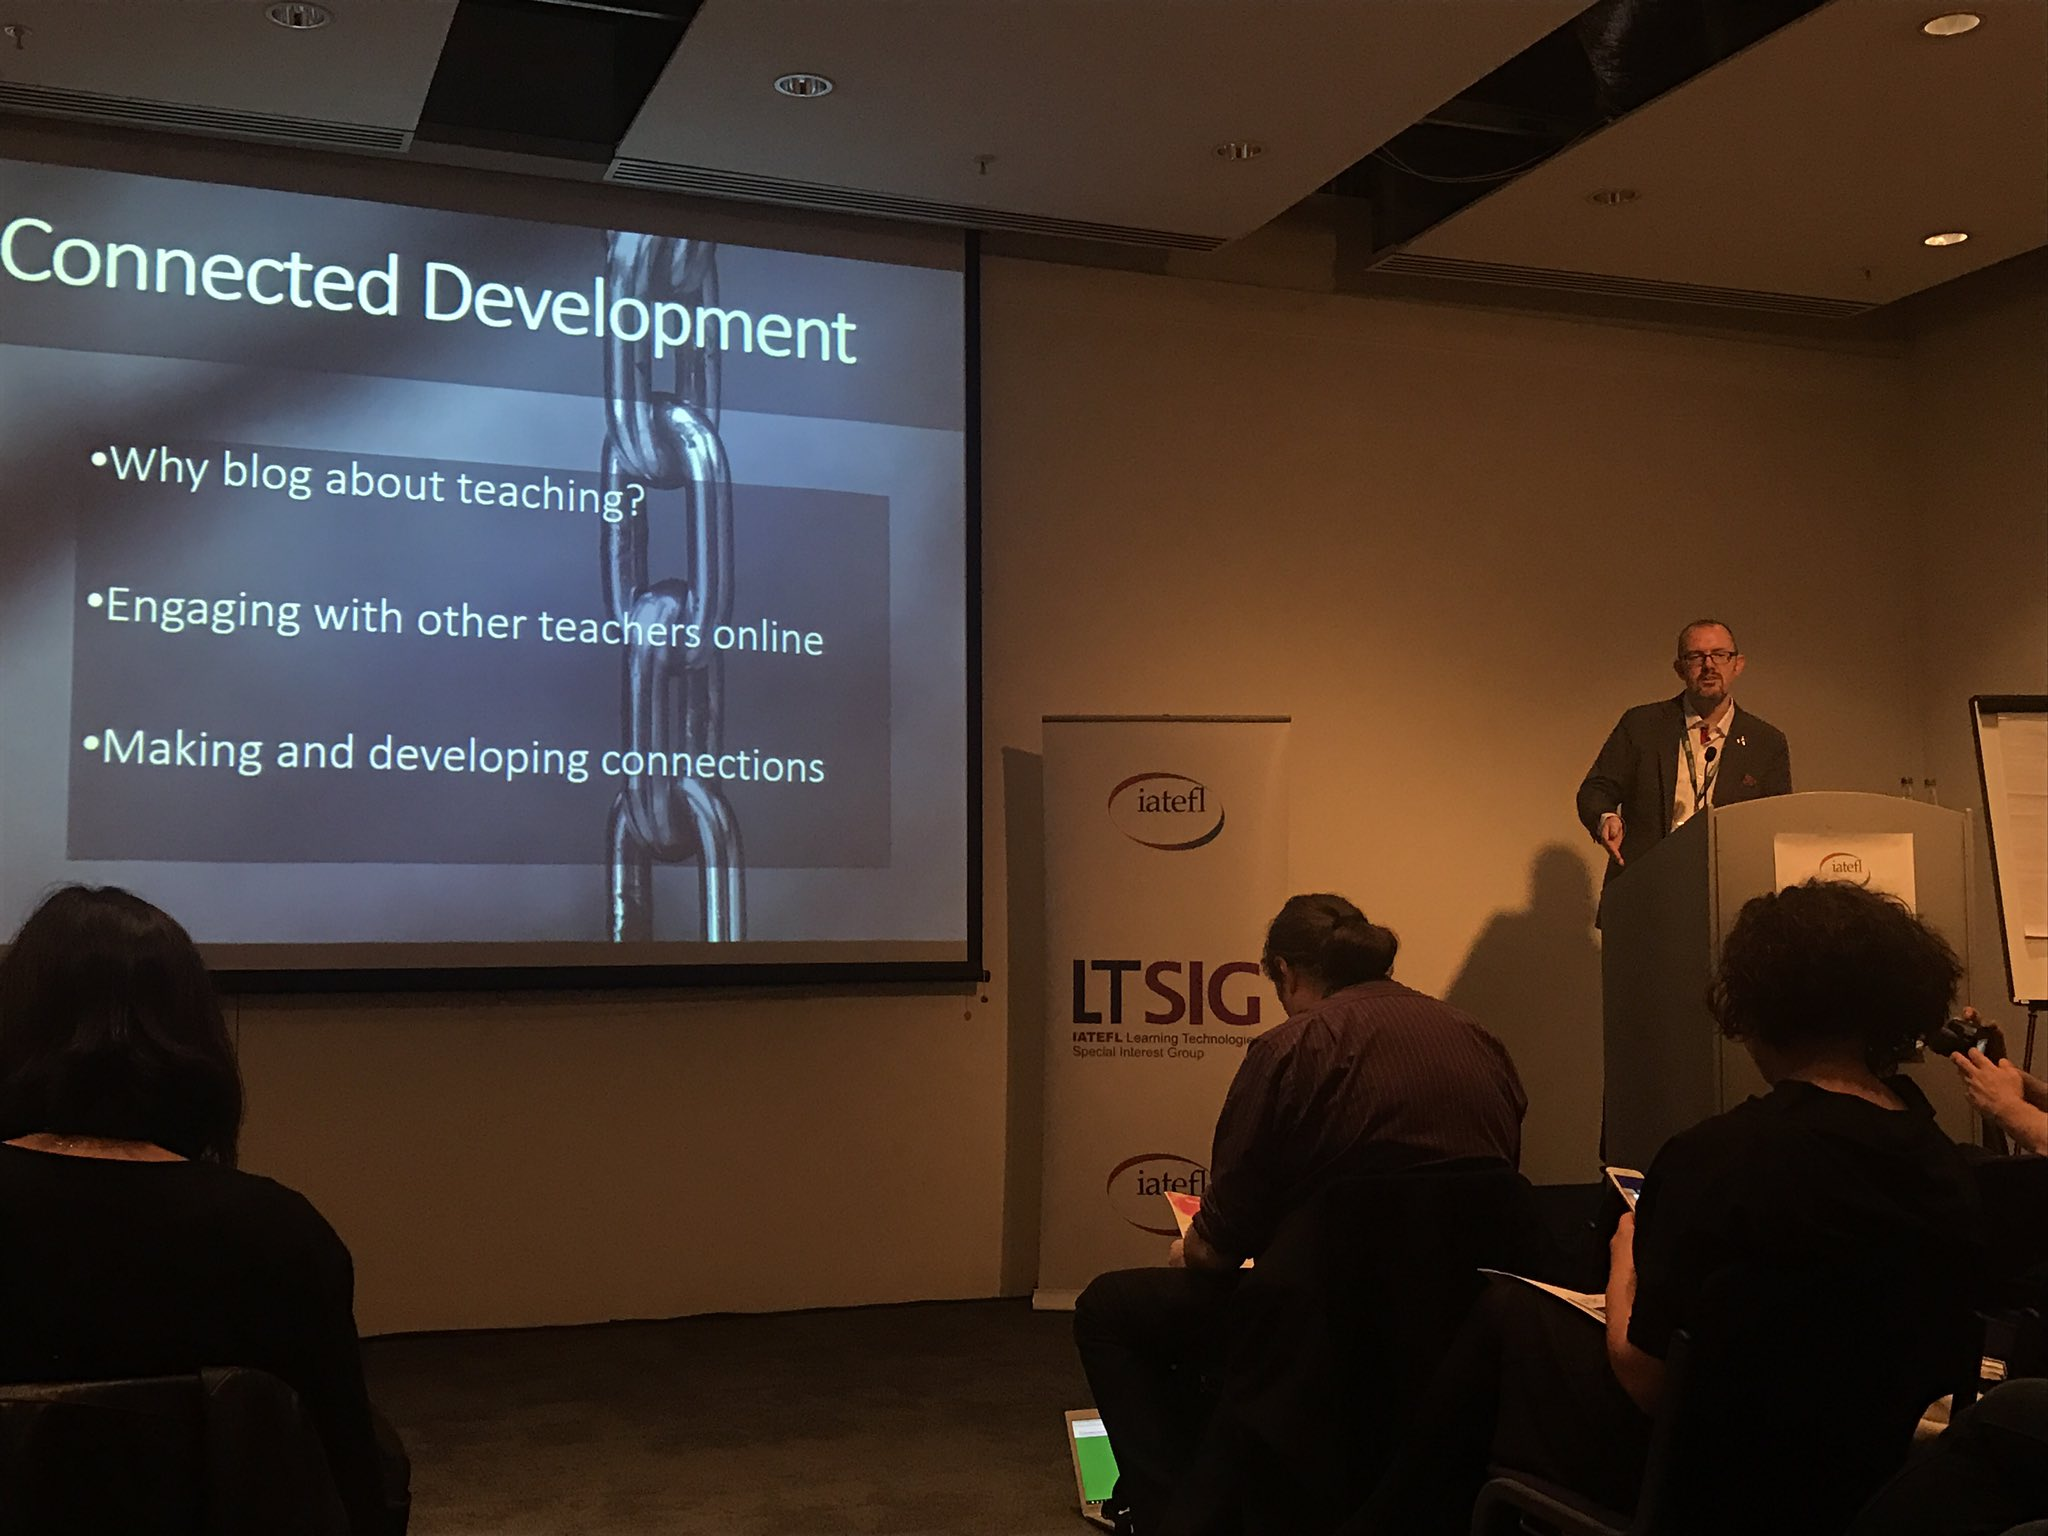 Listening to @DaveDodgson on connected development--one which we've kinda of grown up together in. #iatefl2017 #LTSIG https://t.co/4IJb4OKsTq